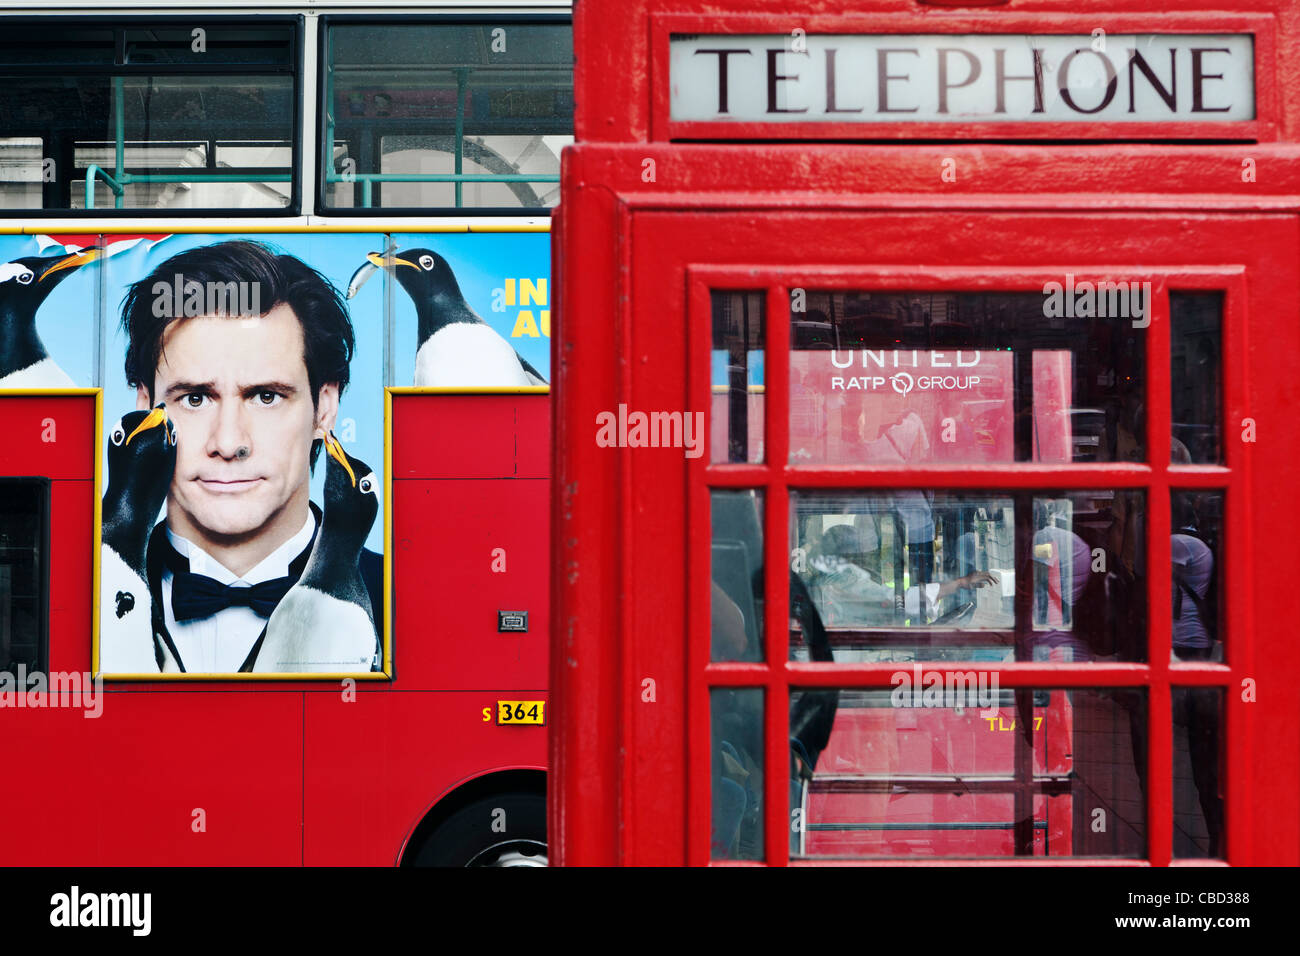 Red Bus and Telephone Box London England - Stock Image